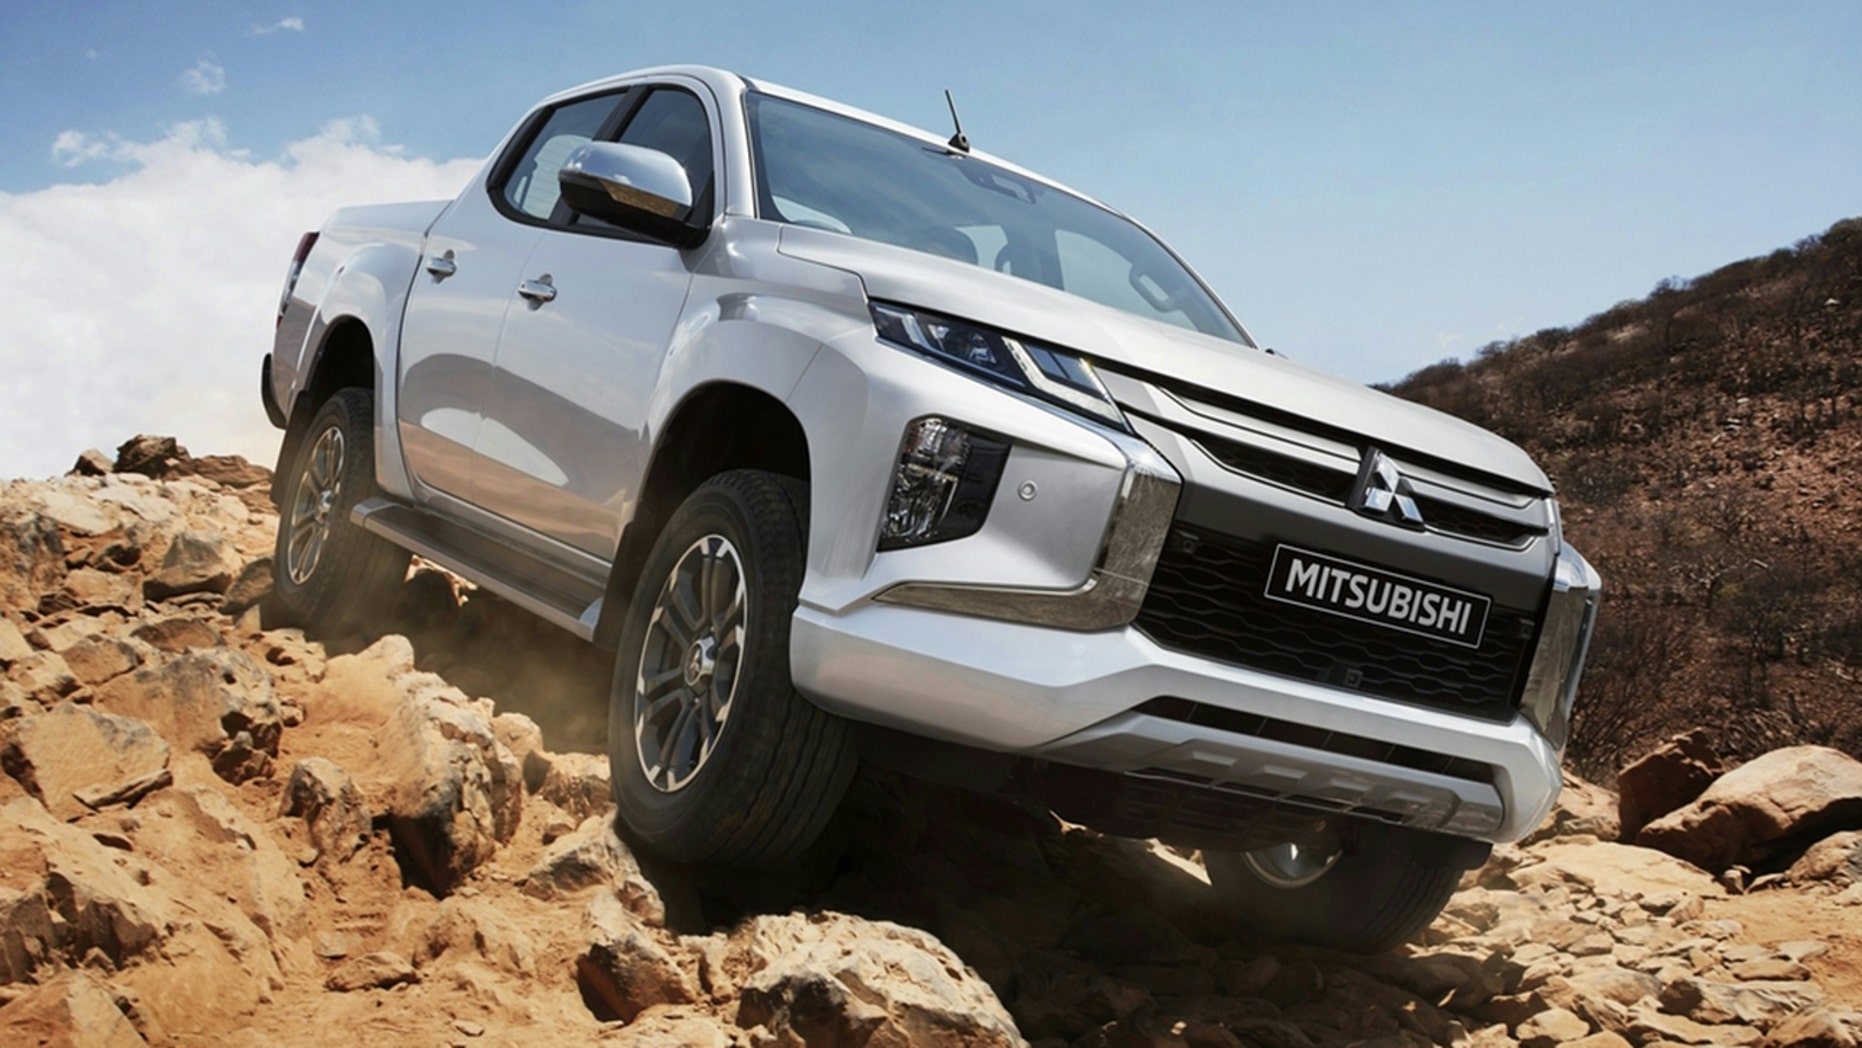 New Gmc Truck >> The new Mitsubishi Triton pickup is ready for the world, but not the USA | Fox News